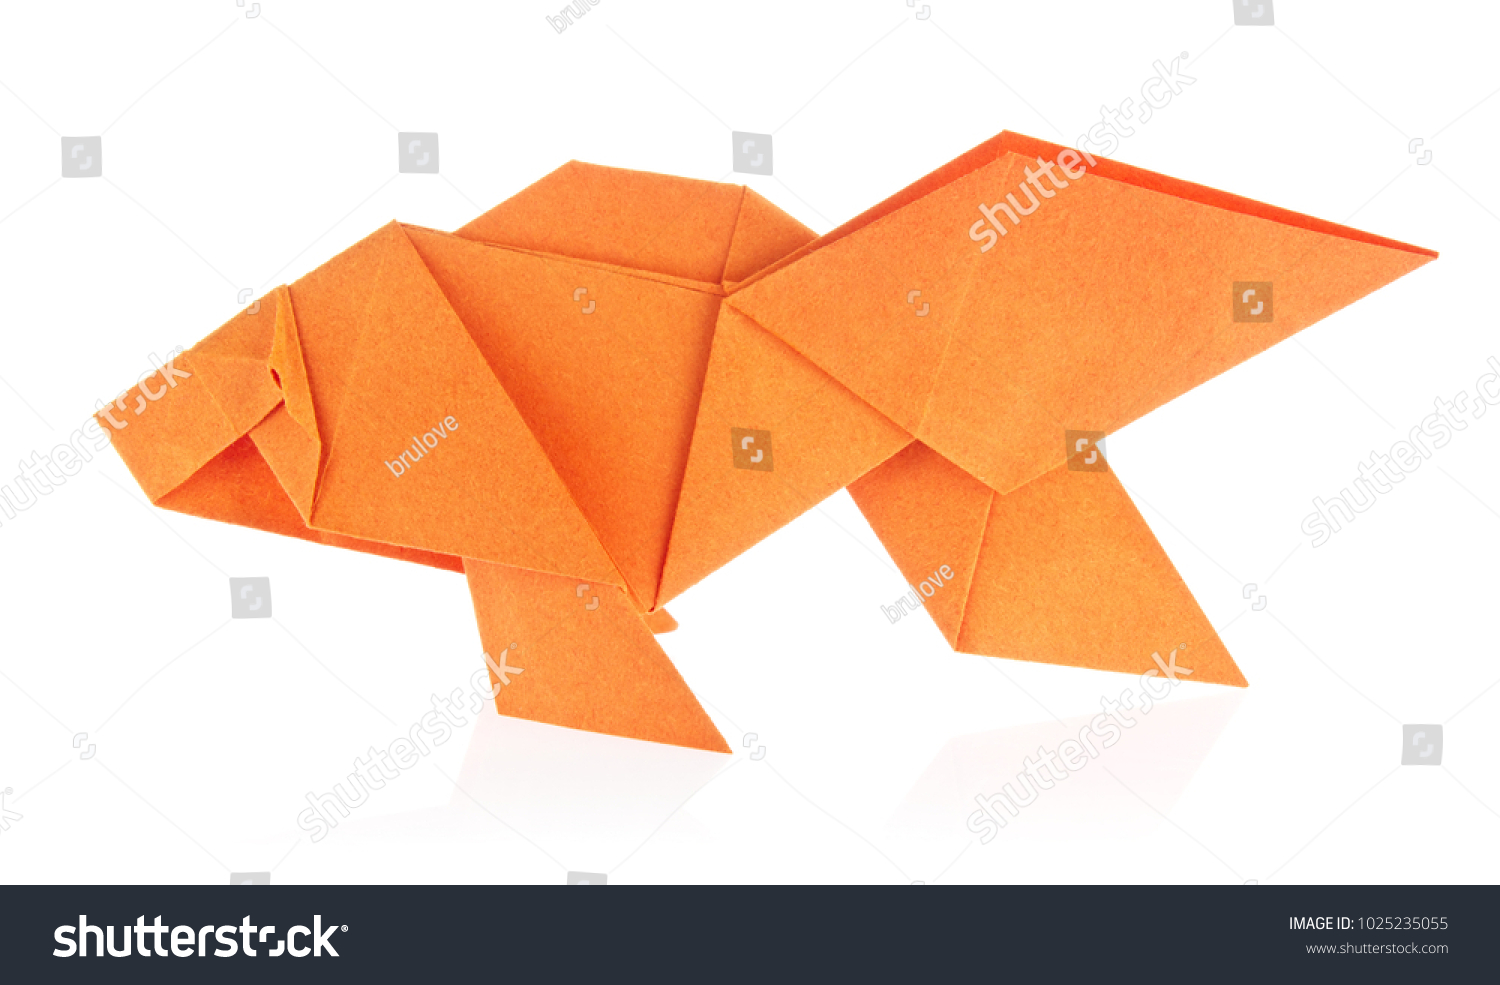 Orange fish origami isolated on white stock photo 1025235055 orange fish of origami isolated on white background jeuxipadfo Images